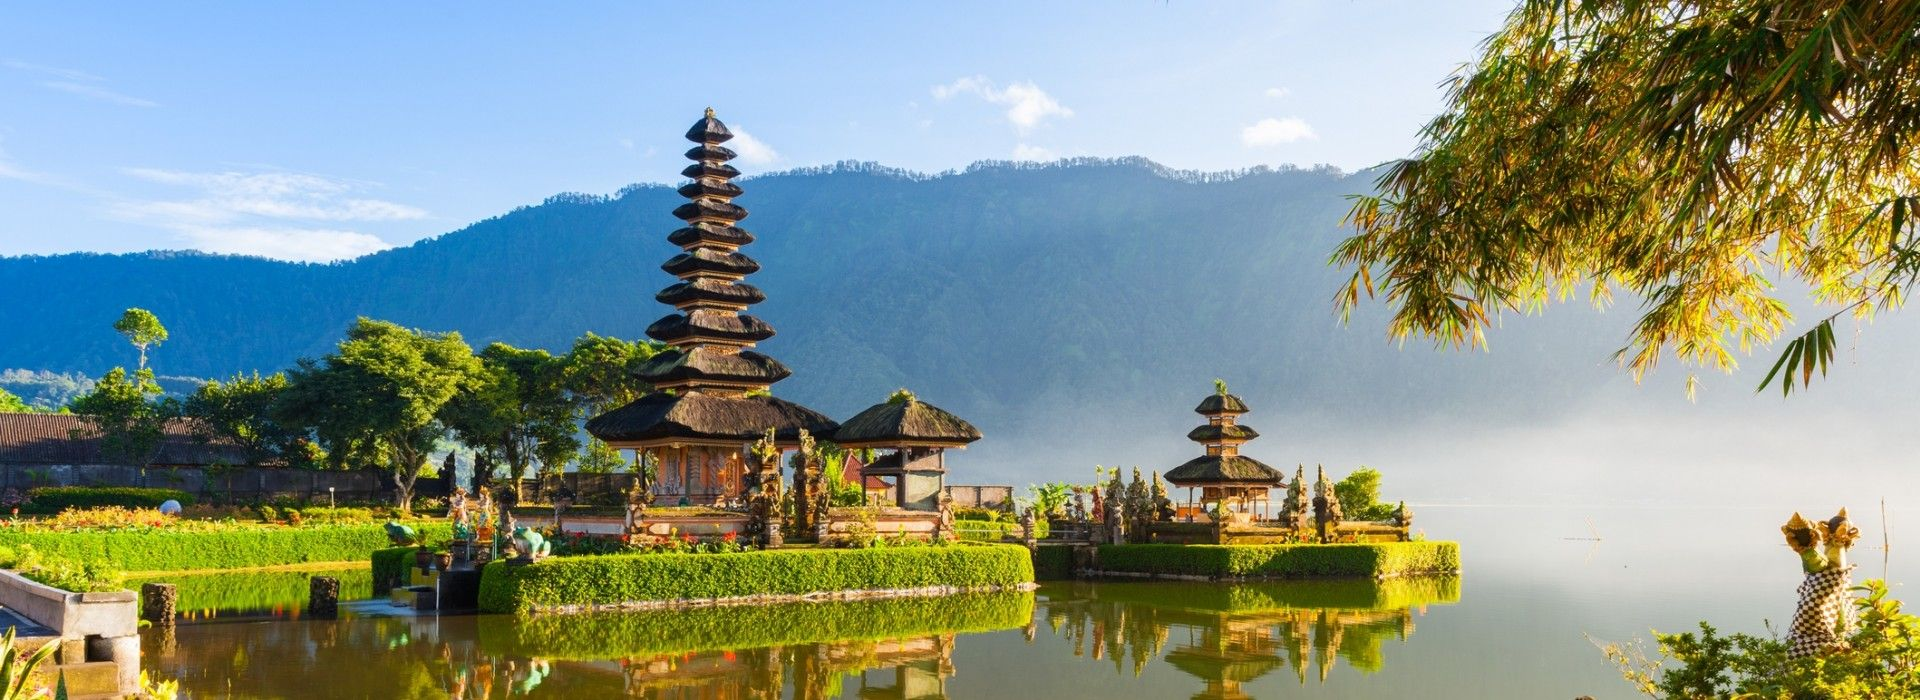 Sightseeing, attractions, culture and history Tours in Kuta